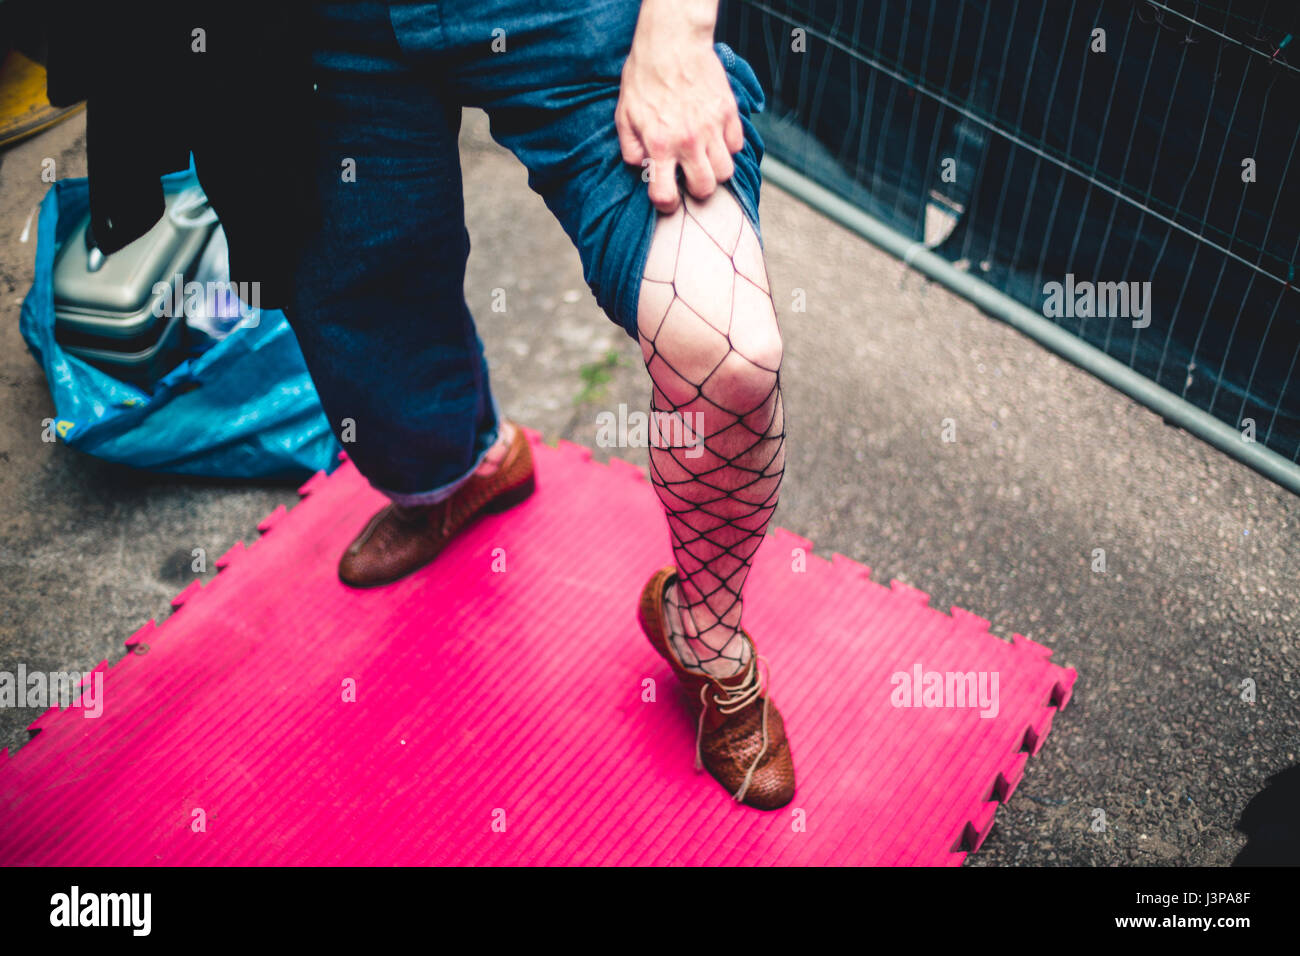 A male performer holds up his jeans to show his tights underneath. - Stock Image